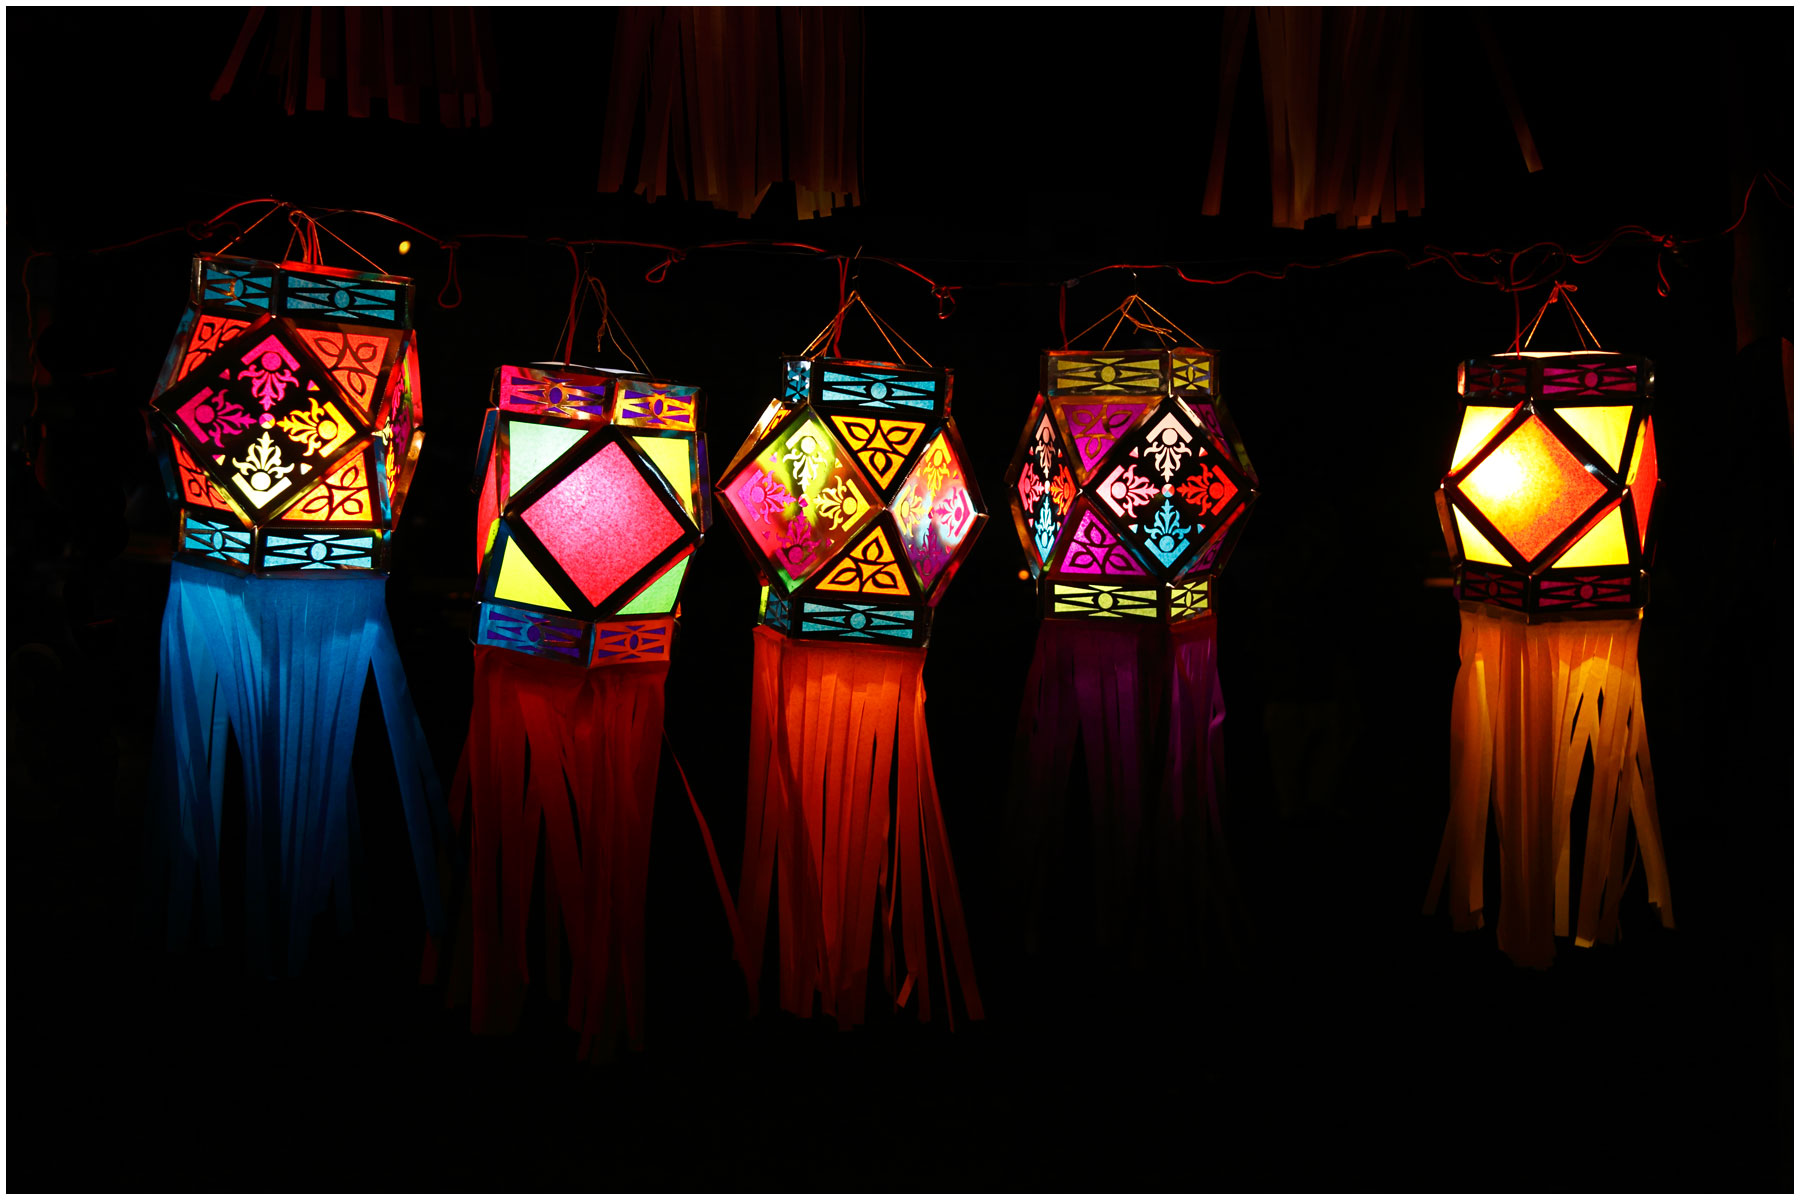 Festival Of Lights Diwali Celebrations October 17